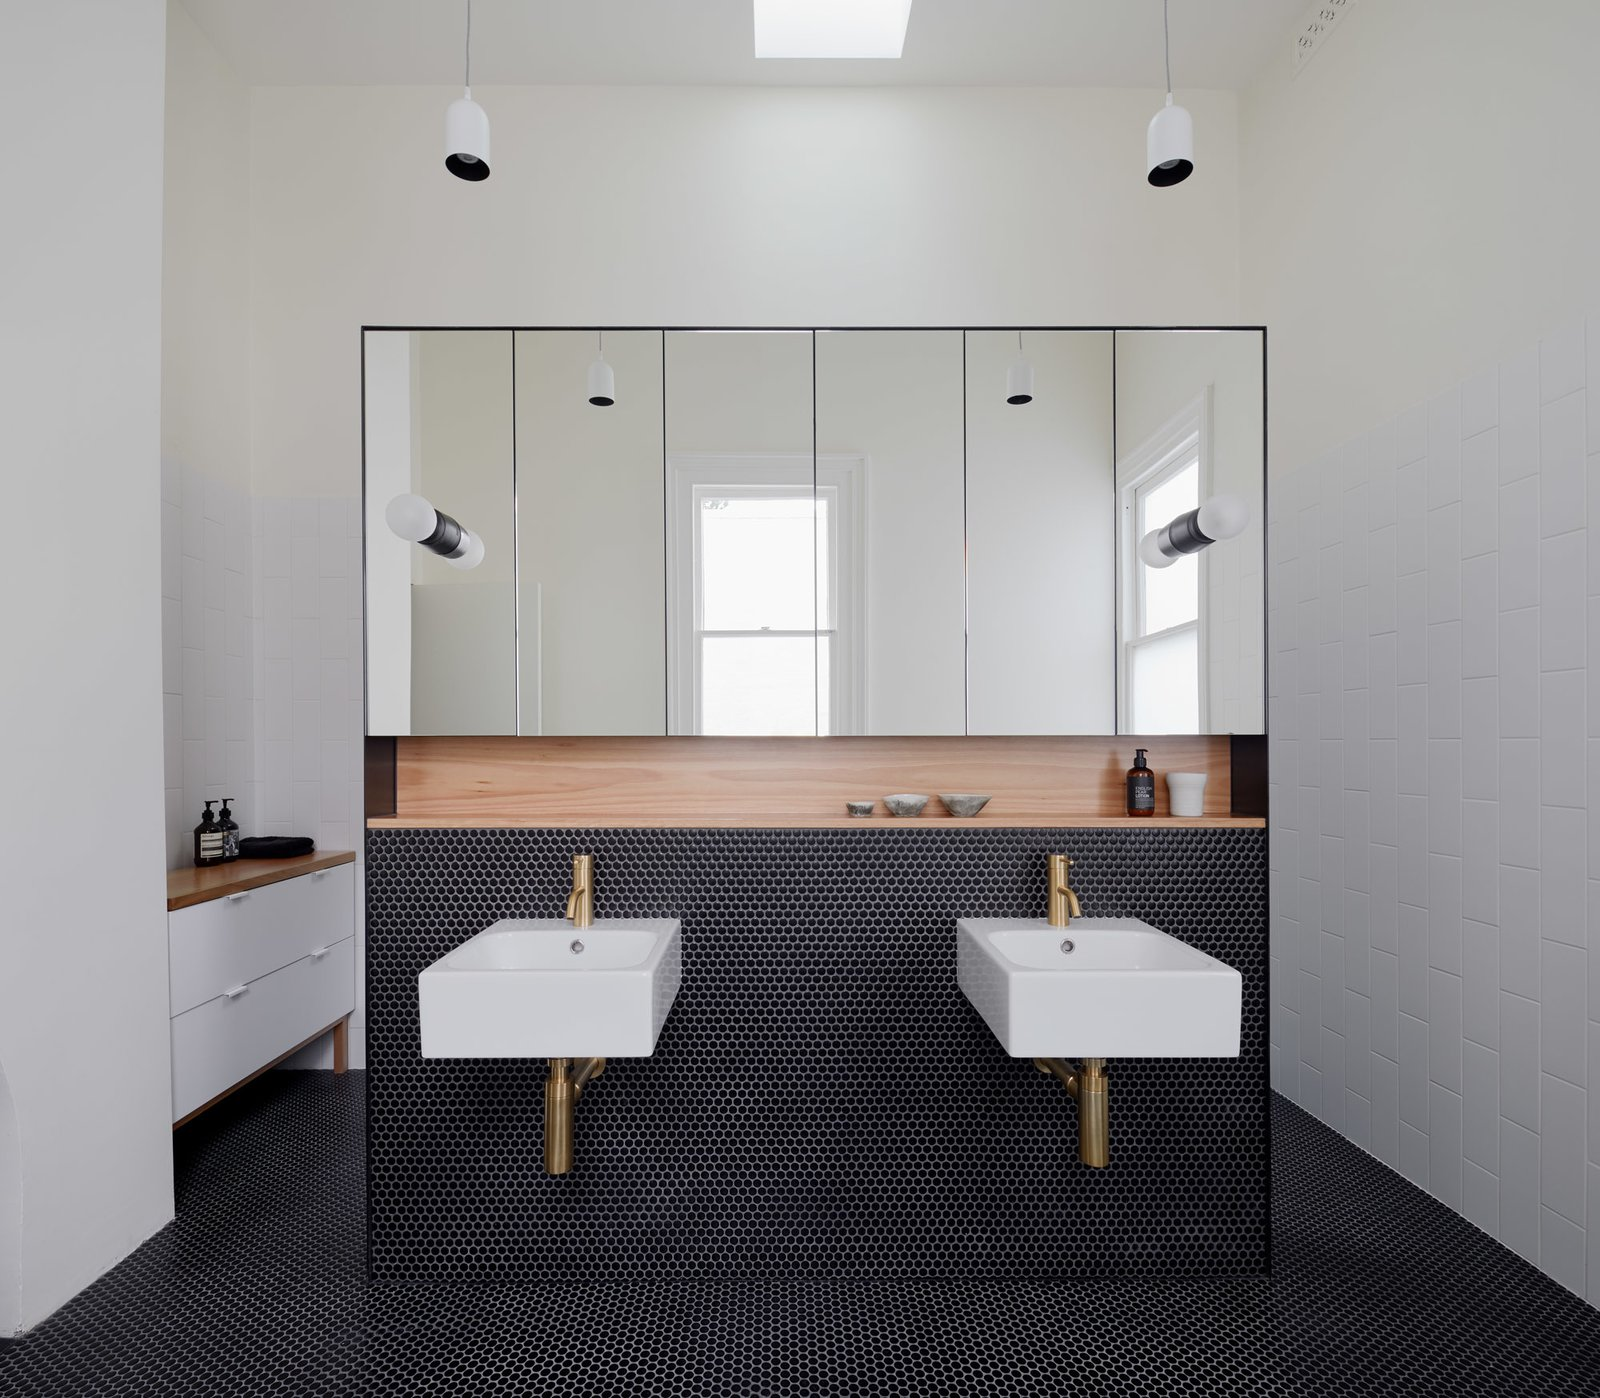 Bath Room, Ceramic Tile Floor, Wall Mount Sink, Wood Counter, Subway Tile Wall, and Pendant Lighting Ensuite vanity wall  Photo 13 of 21 in Thanks to a Double-Height Dining Room, a Melbourne Home Basks in Sunshine and Courtyard Views from South Yarra Void House